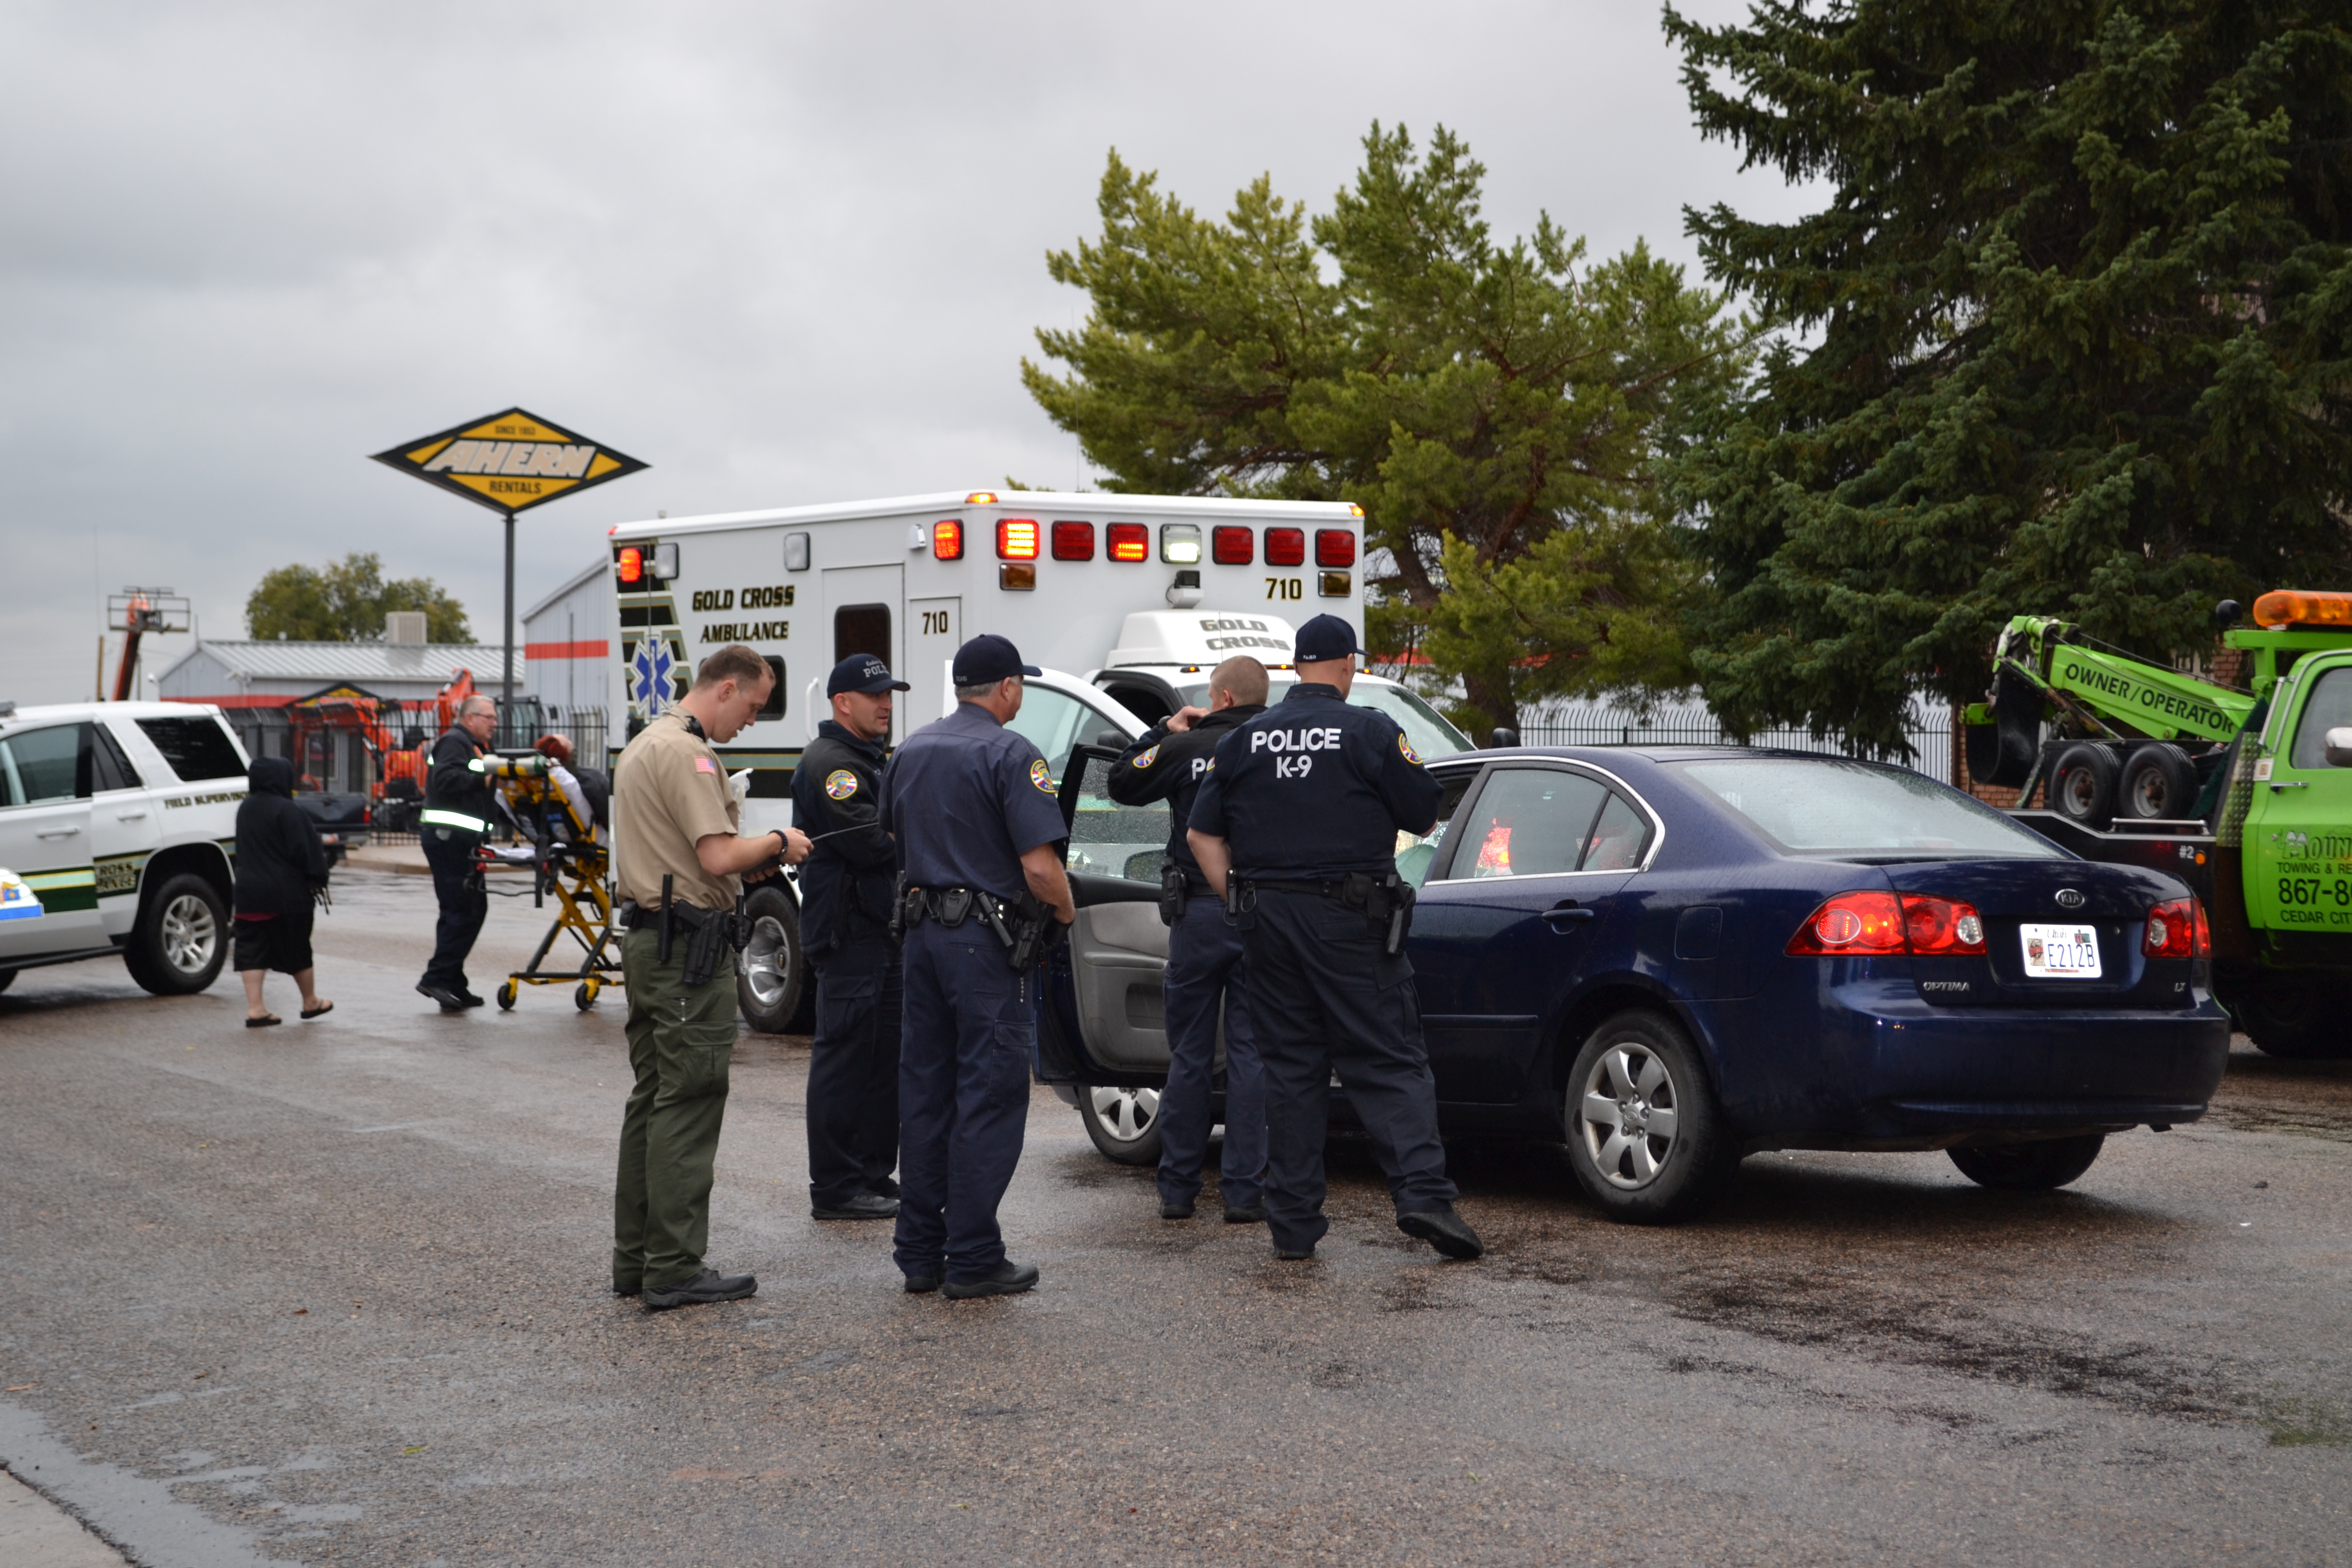 A woman was transported to the hospital after a collision with another vehicle, Cedar City, Utah, Oct. 29, 2015 | Photo by Emily Hammer, St. George News